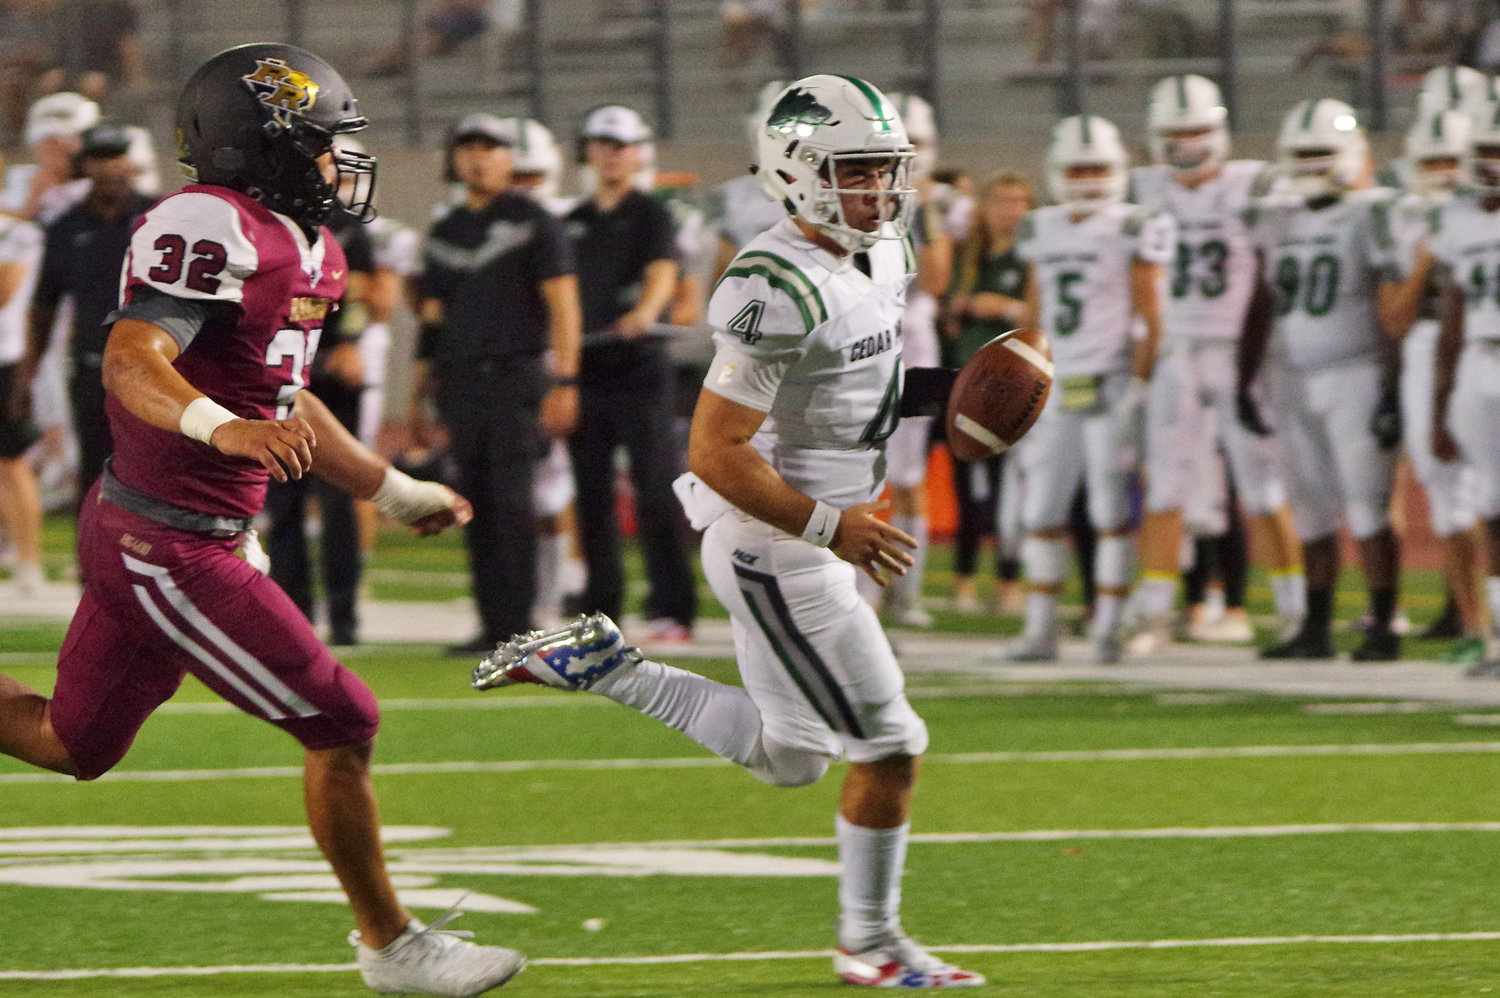 Cedar Park Timberwolves quarterback Ryder Hernandez (4) rolls left for a touchdown early in the the 3rd quarter against the Rouse Raiders at Bible Stadium, Leander, Texas on September 27th, 2019.